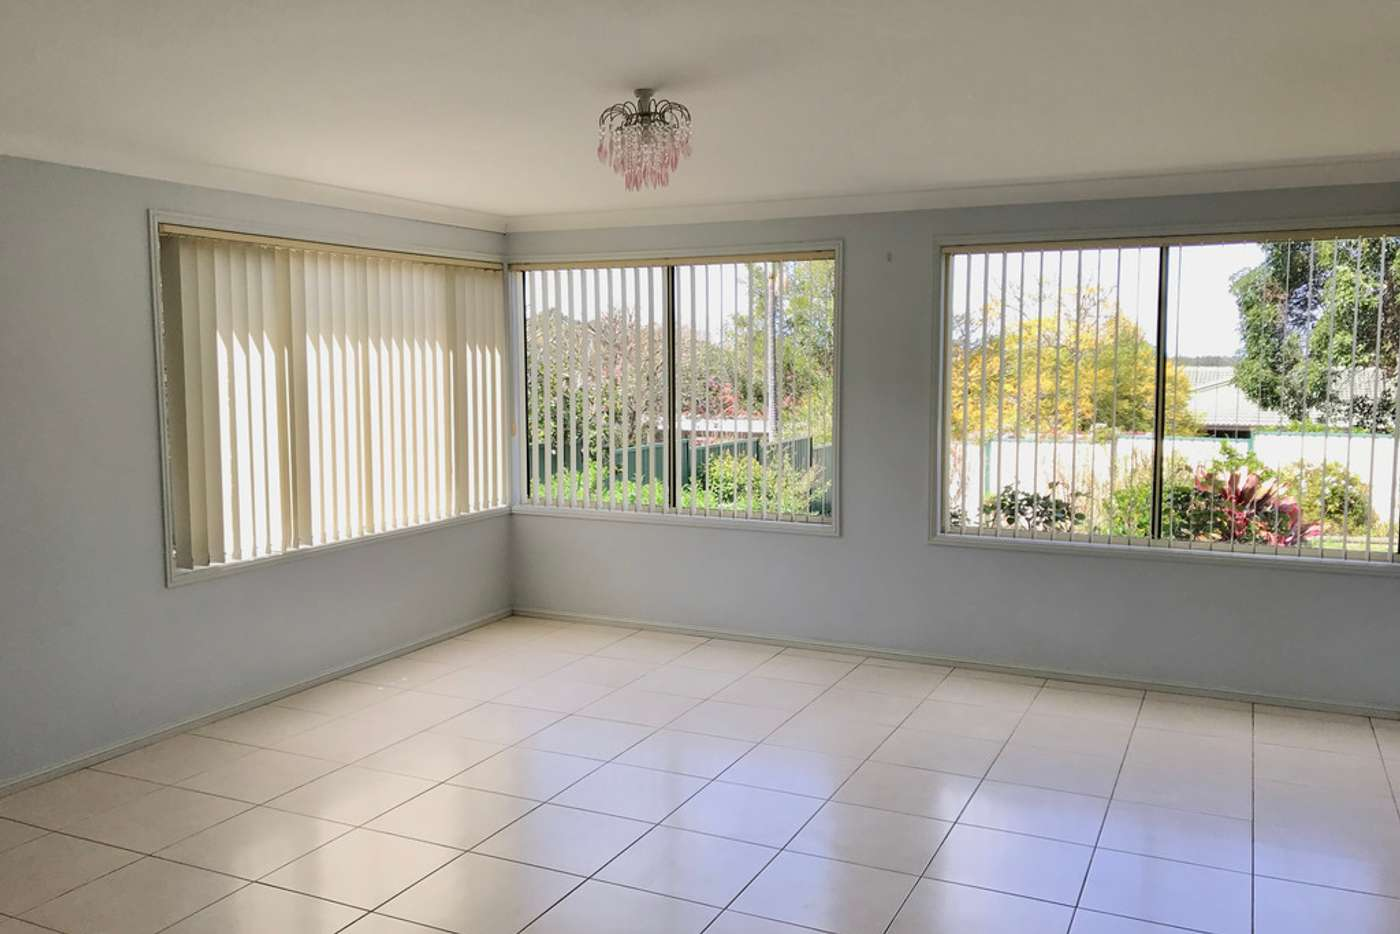 Sixth view of Homely house listing, 18 Charles Street, Baulkham Hills NSW 2153